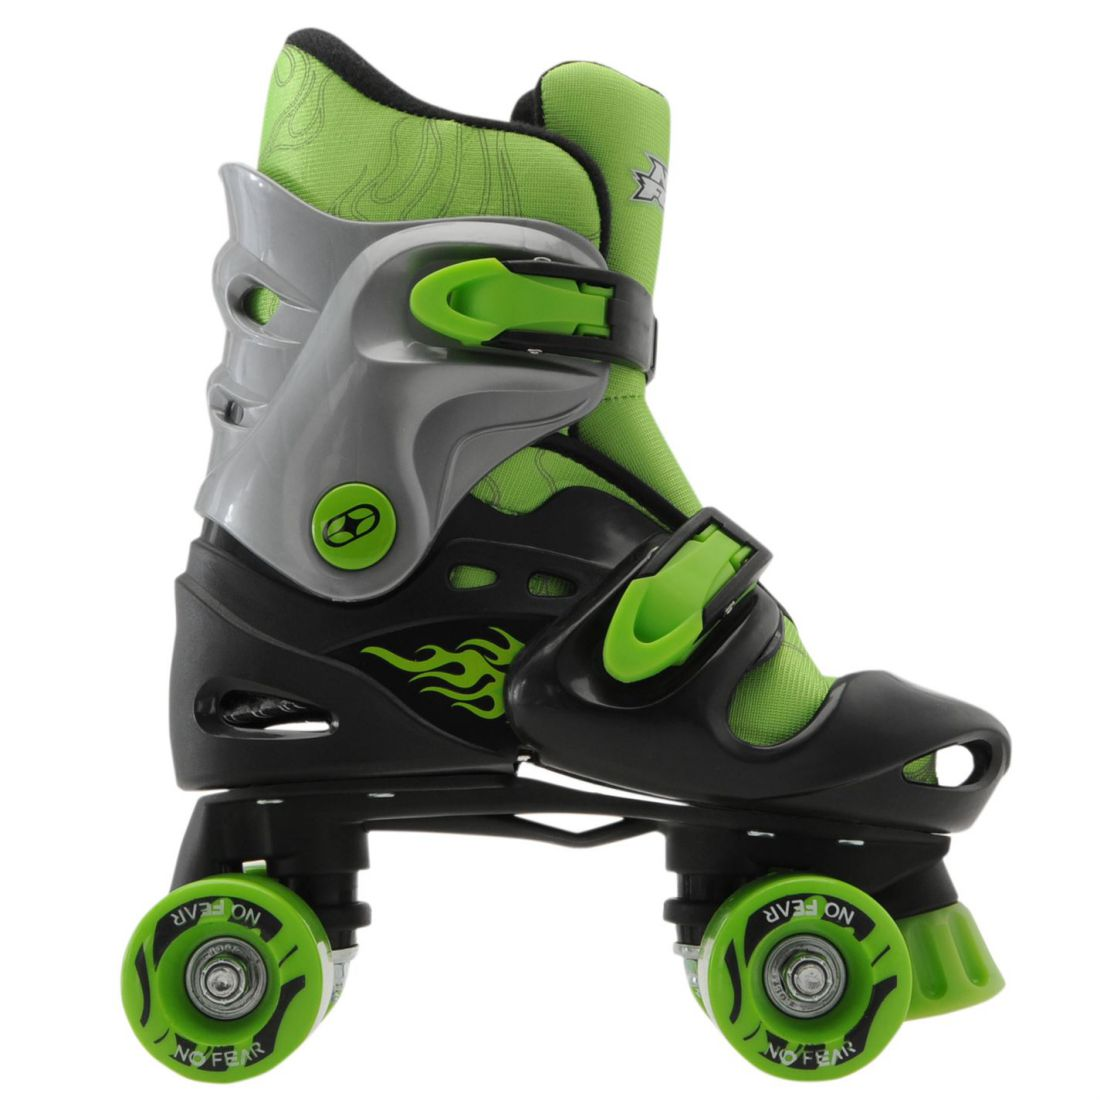 No Fear Quad Skates Rollers Wheeled Trainers Skate Shoes Boys Childrens